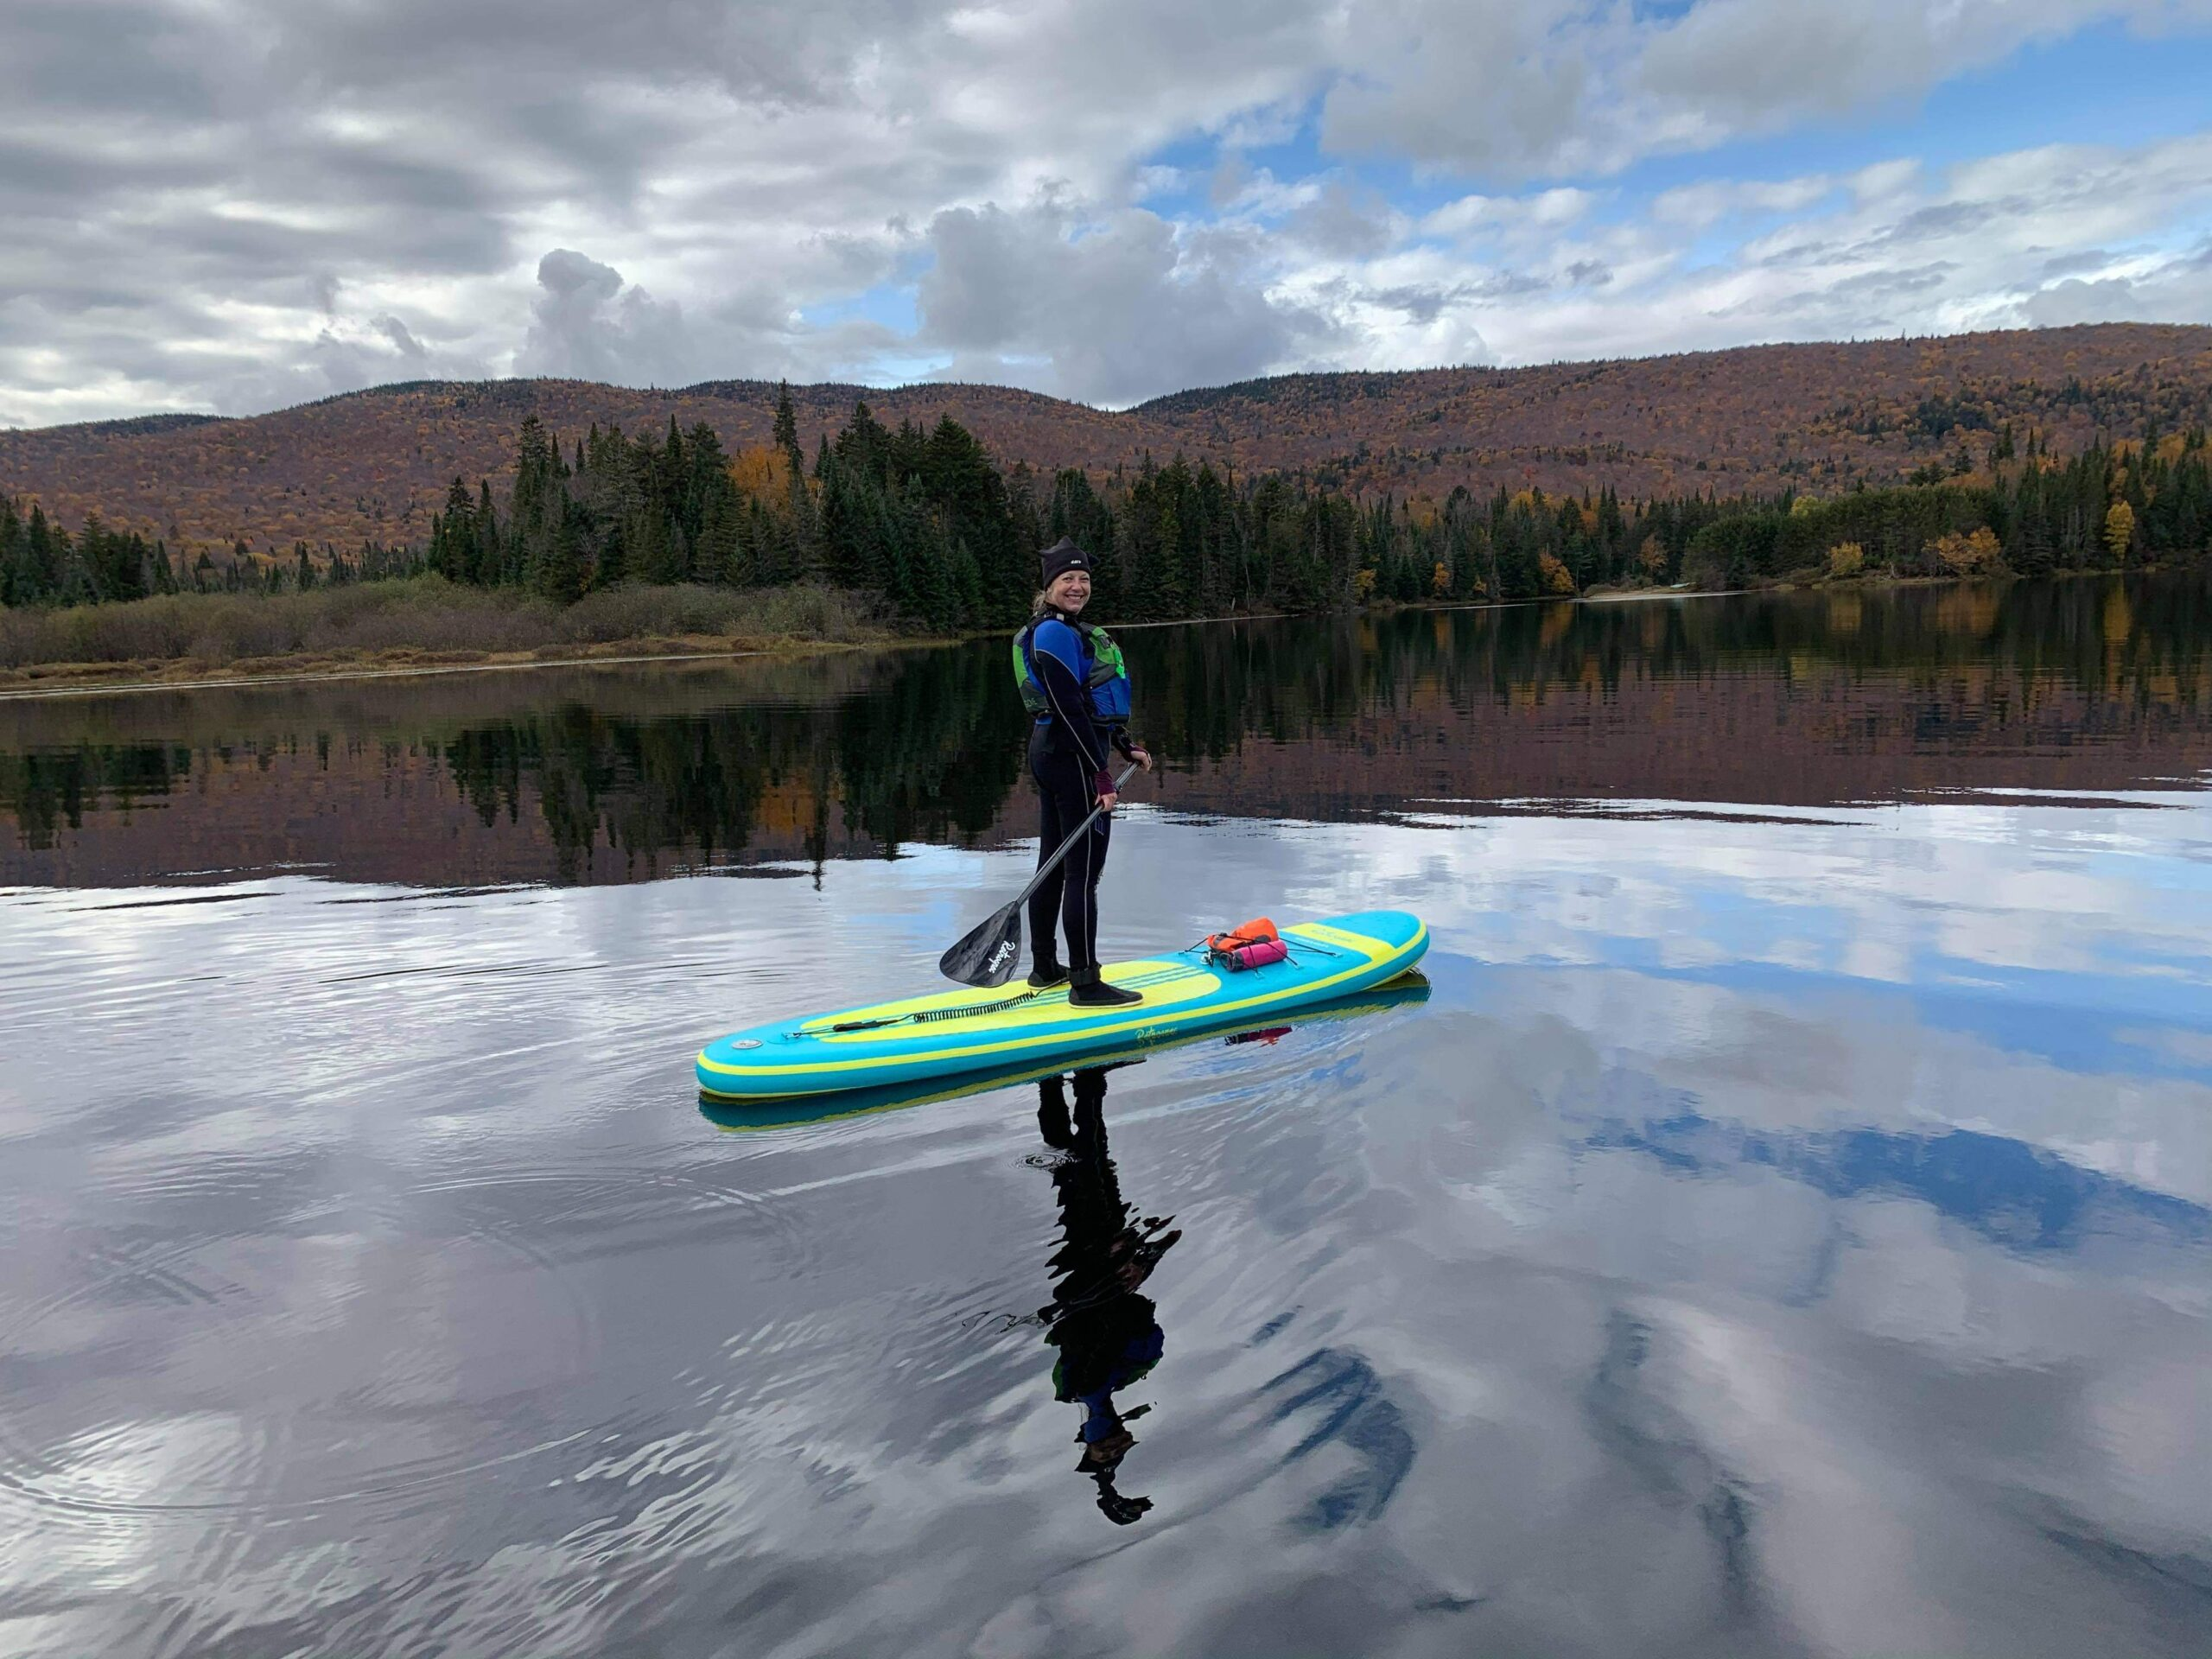 MY FIRST ENCOUNTER WITH A SUP